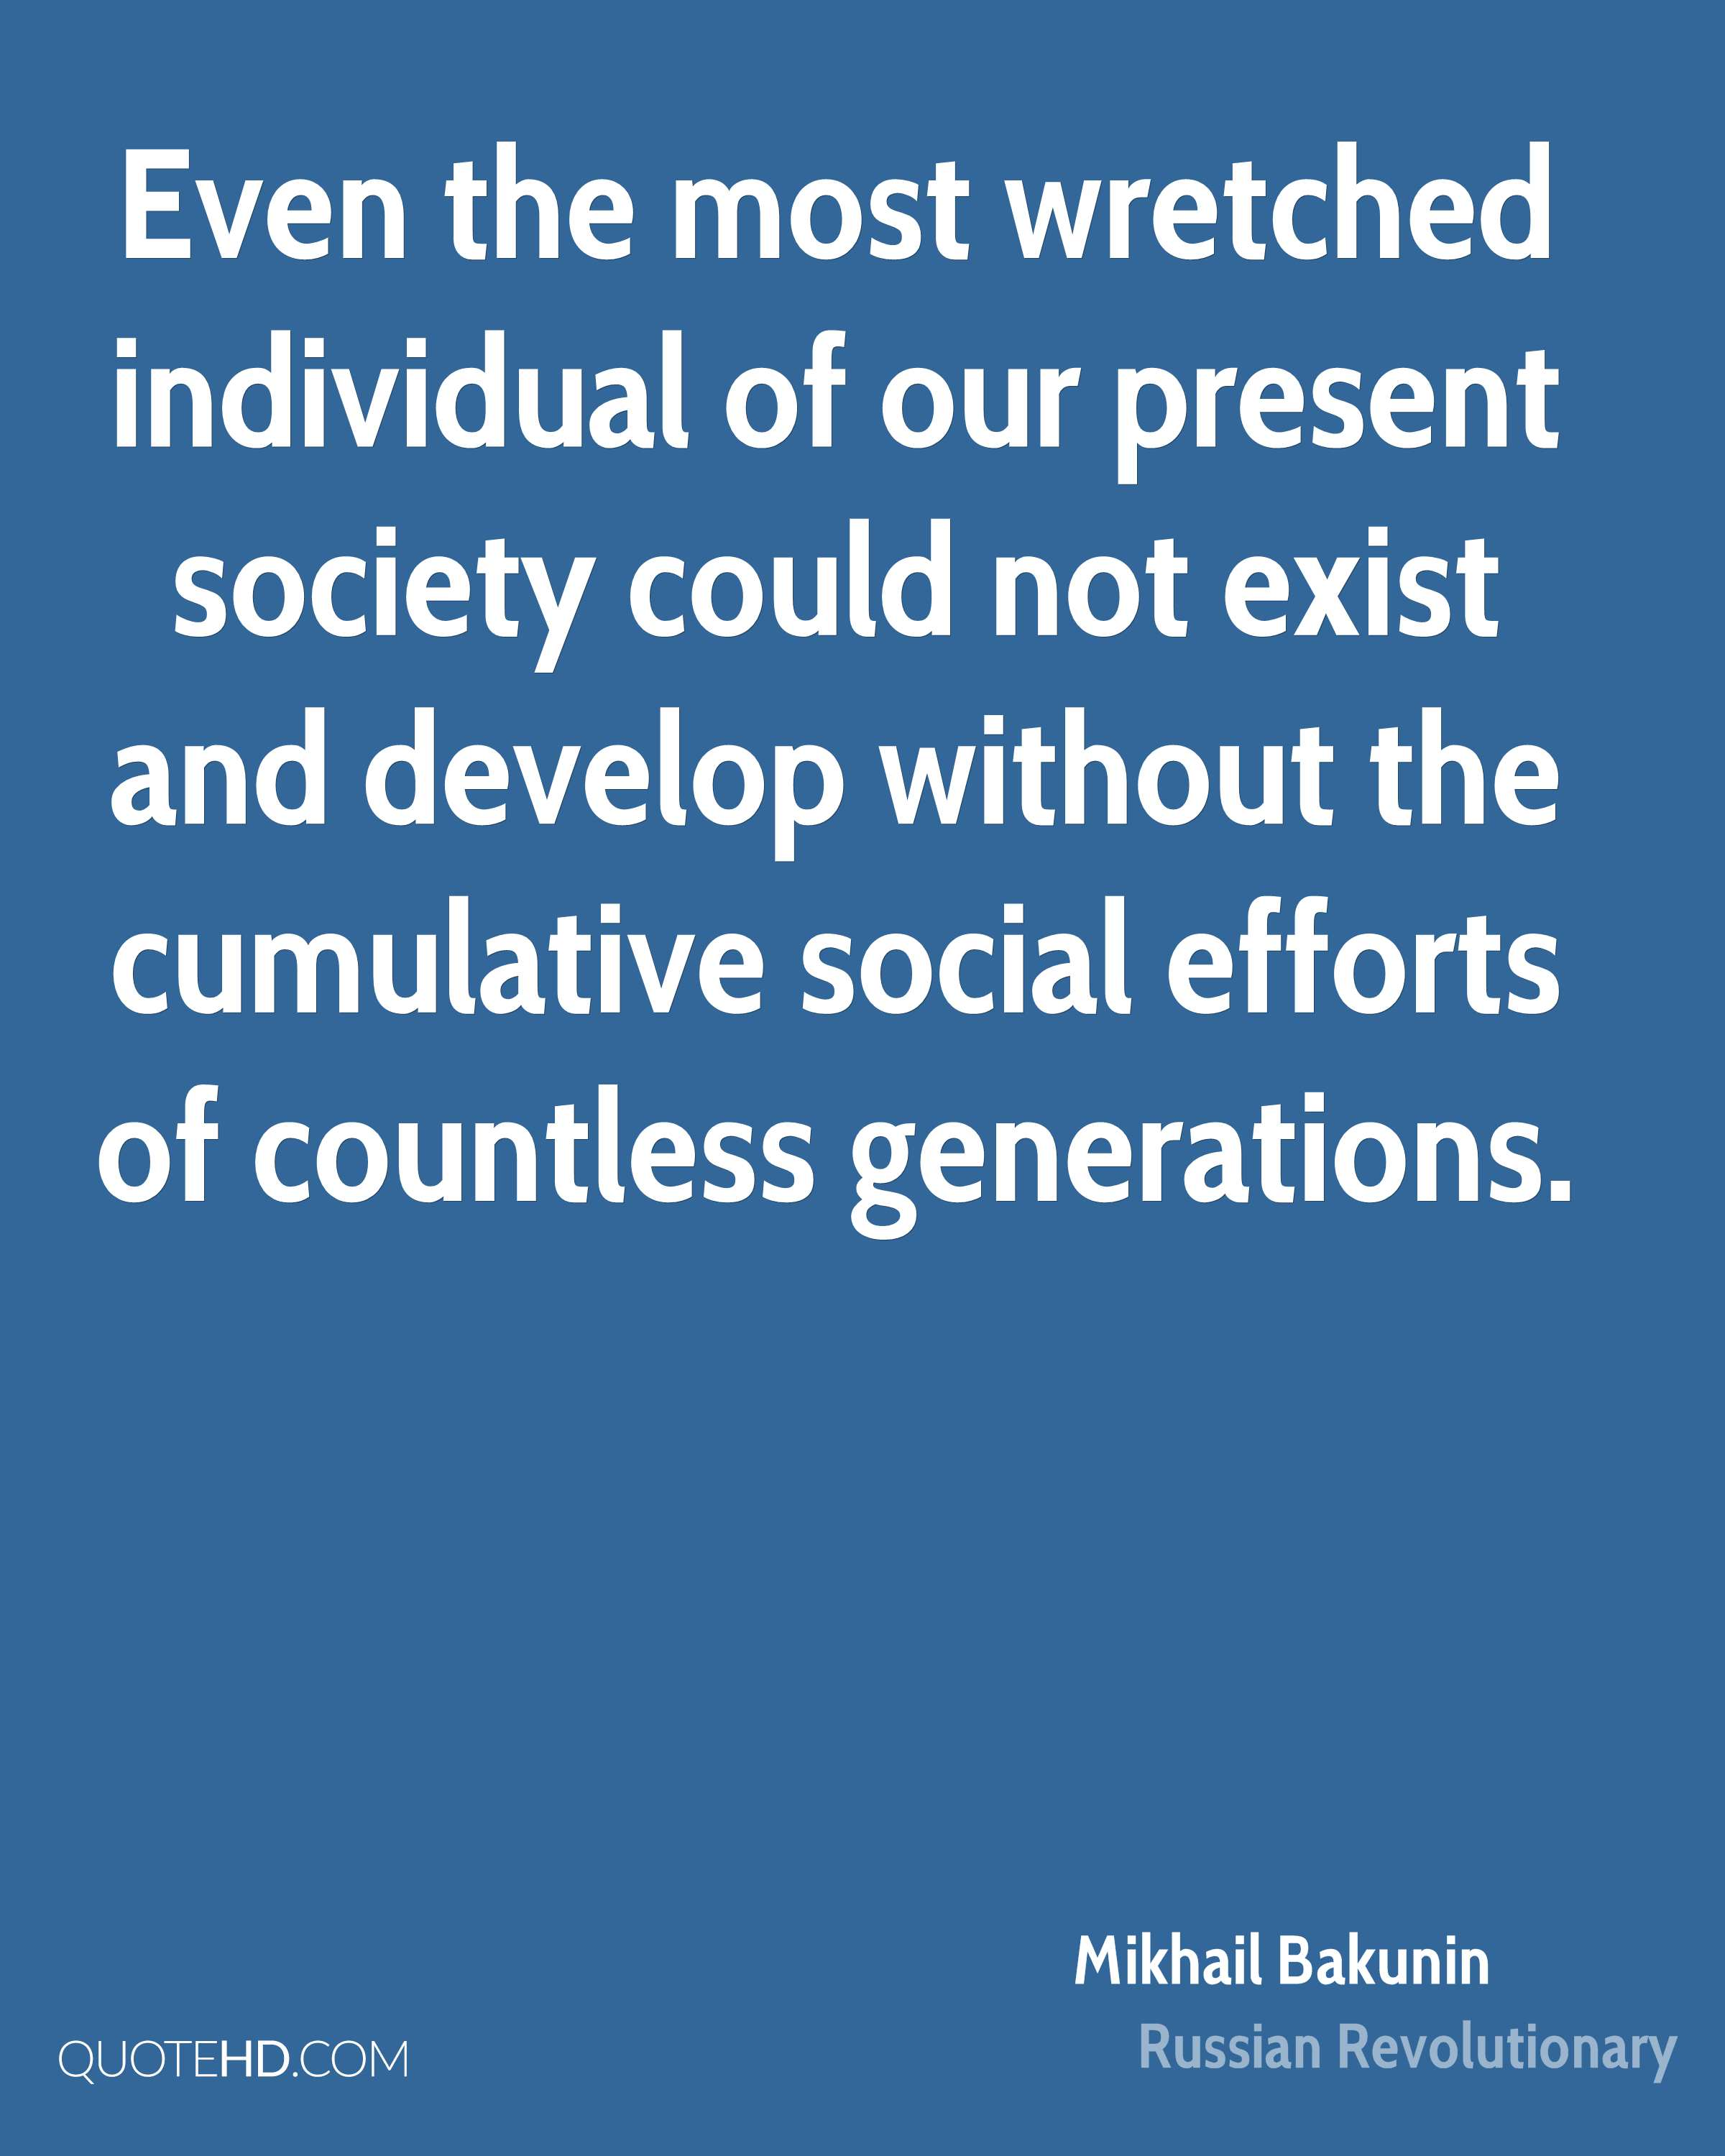 Even the most wretched individual of our present society could not exist and develop without the cumulative social efforts of countless generations.